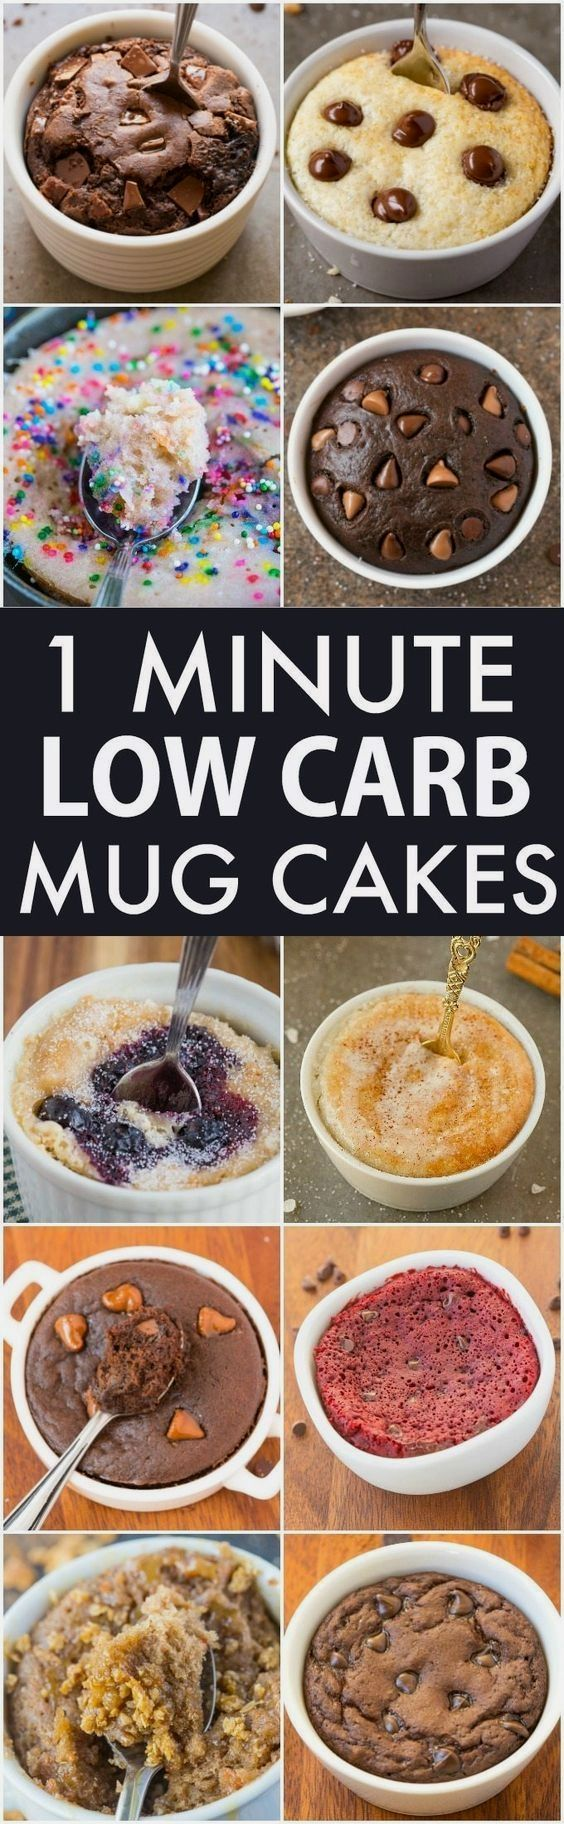 Low Carb Healthy 1 Minute Mug Cakes, Brownies and Muffins (V, GF, Paleo)- Delicious, single-serve desserts and snacks which take less than a minute! Low carb, sugar free and more with OVEN options too! vegan, gluten free, paleo recipe- #mugcake #healthy #singleserve | recipe on thebigmansworld.com